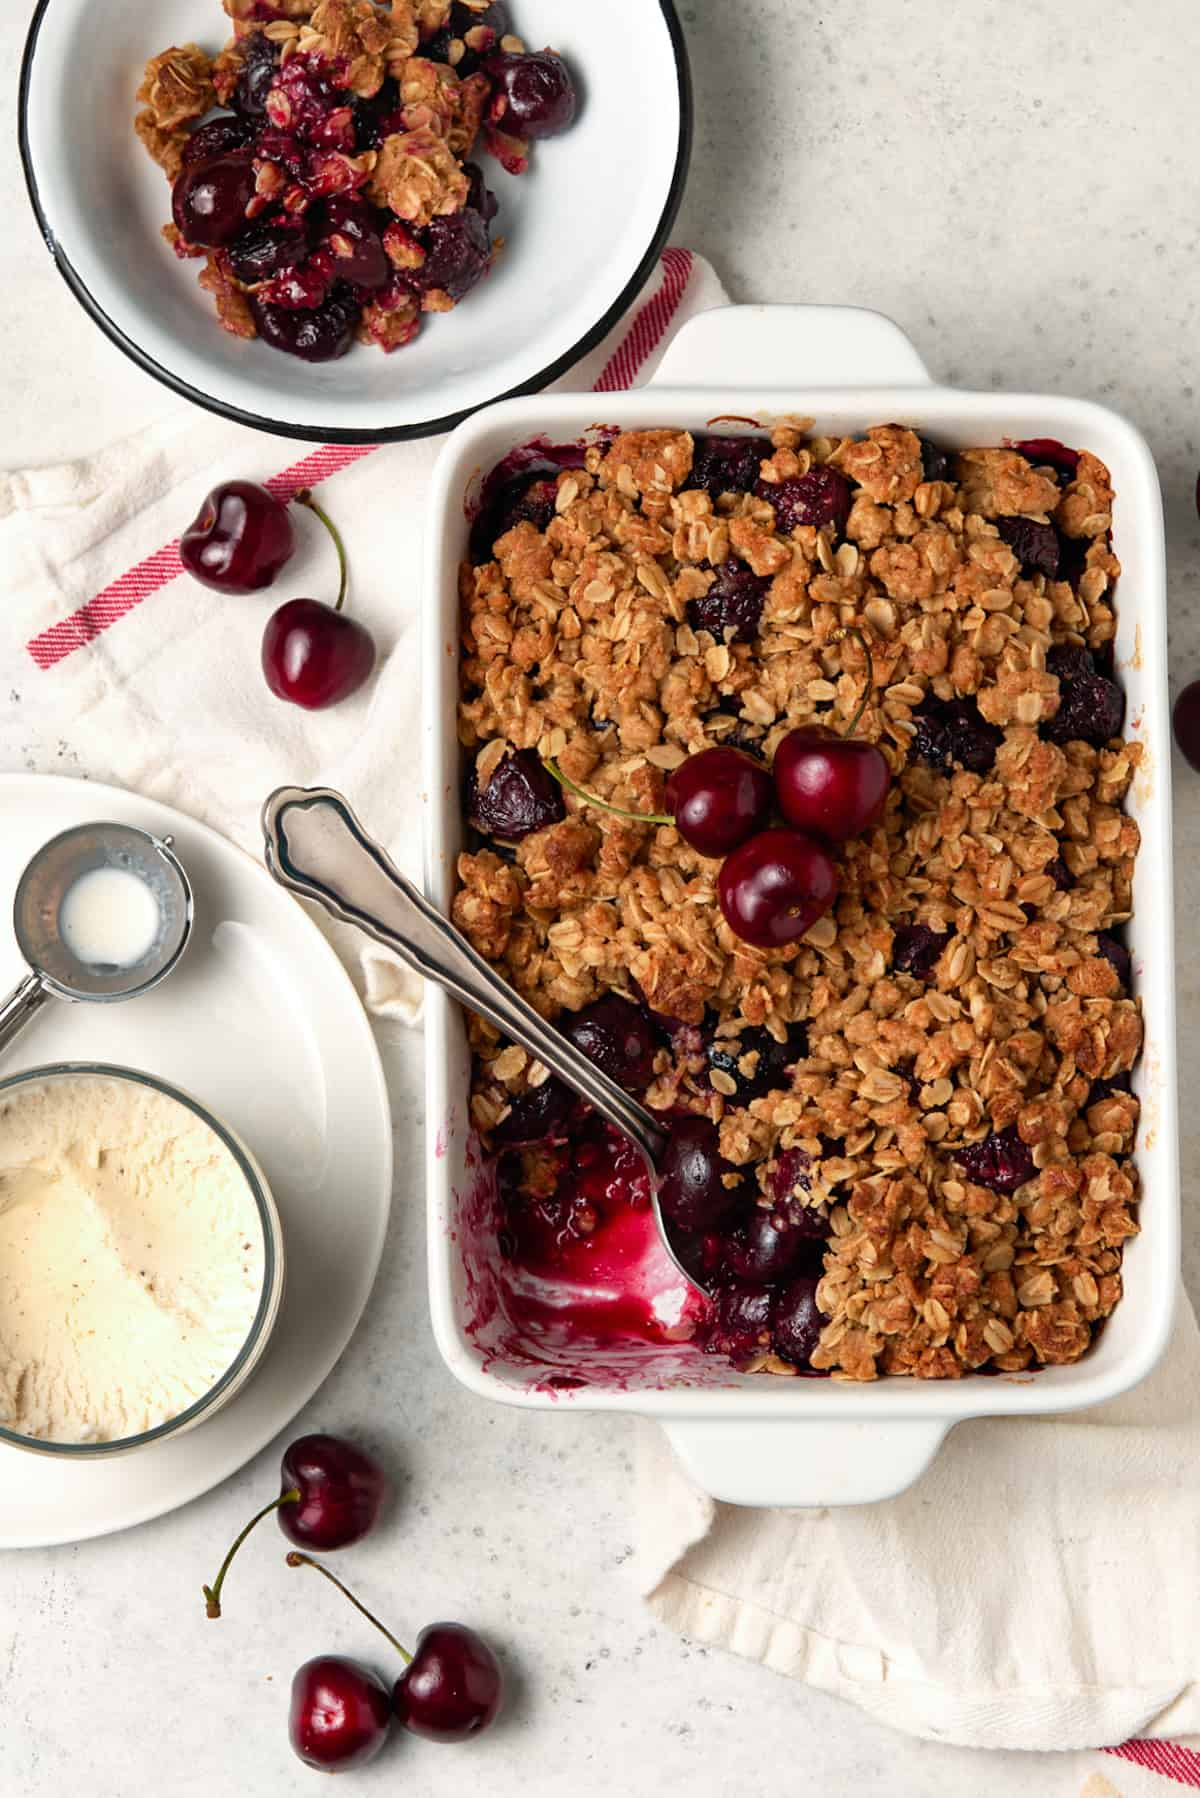 Cherry crisp in a white casserole dish with a serving removed.